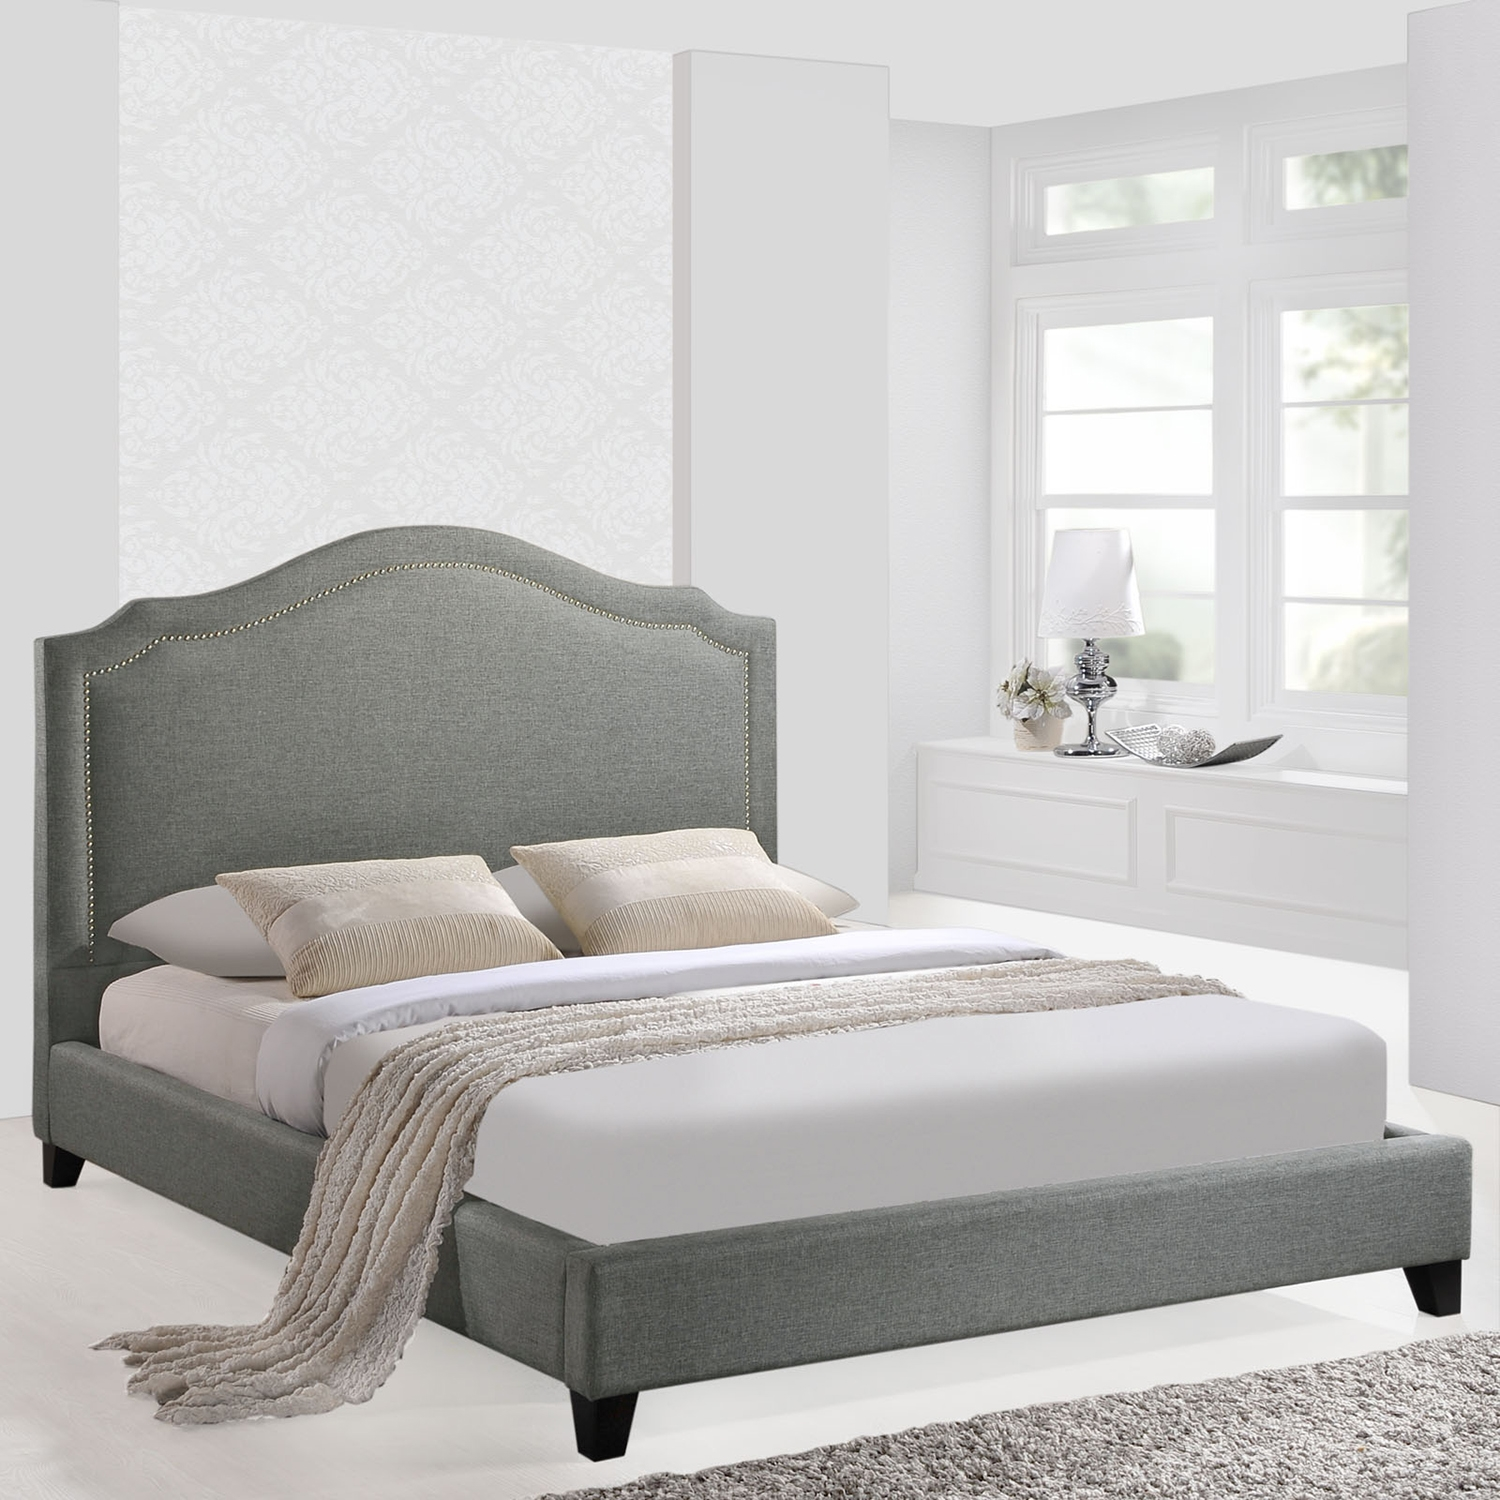 Charlotte Nailhead Queen Bed - Gray - EEI-MOD-5045-GRY-SET